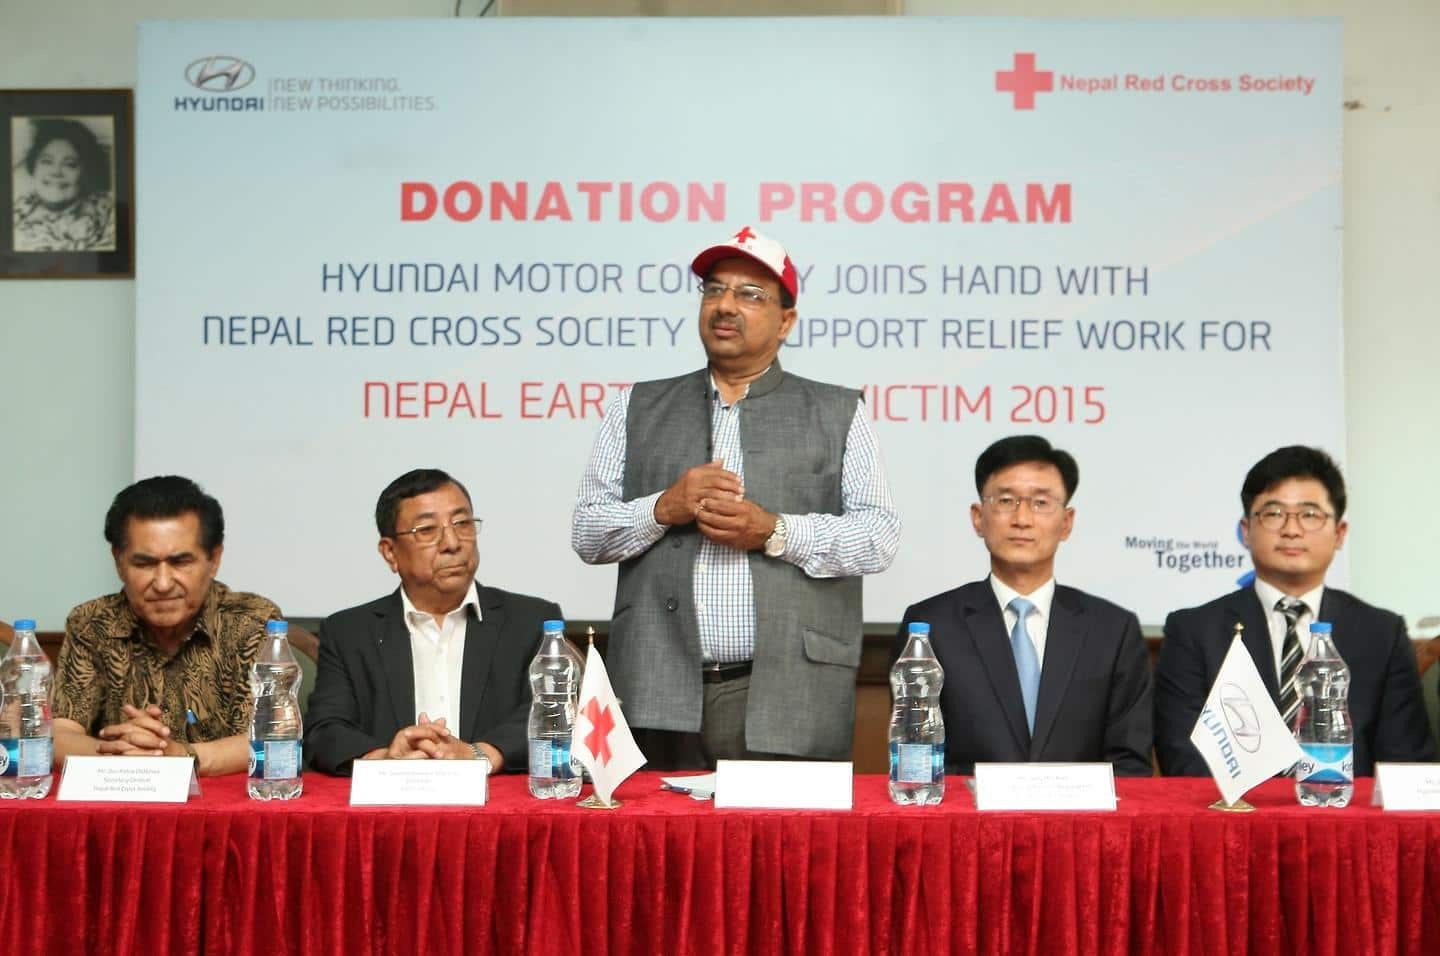 Hyundai Motor donates US$ 300 thousand for Nepal quake relief